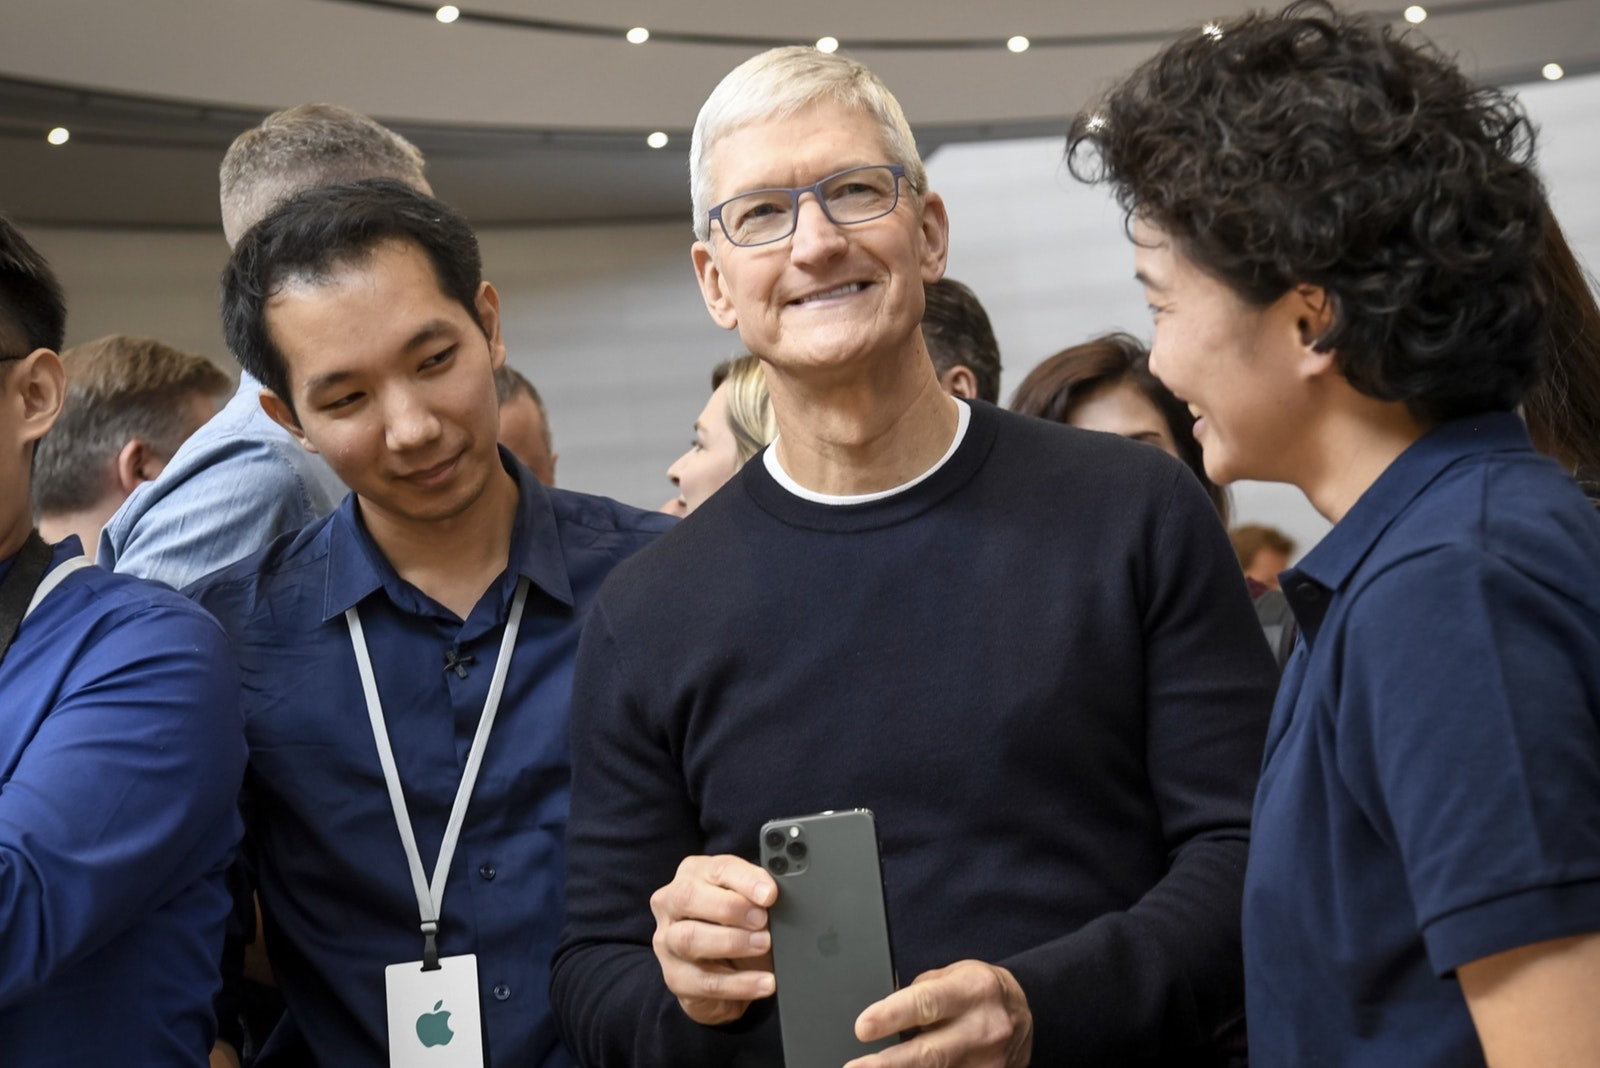 Apple CEO Tim Cook holds the iPhone 11 Pro after an event unveiling it last September. Photo by Bloomberg